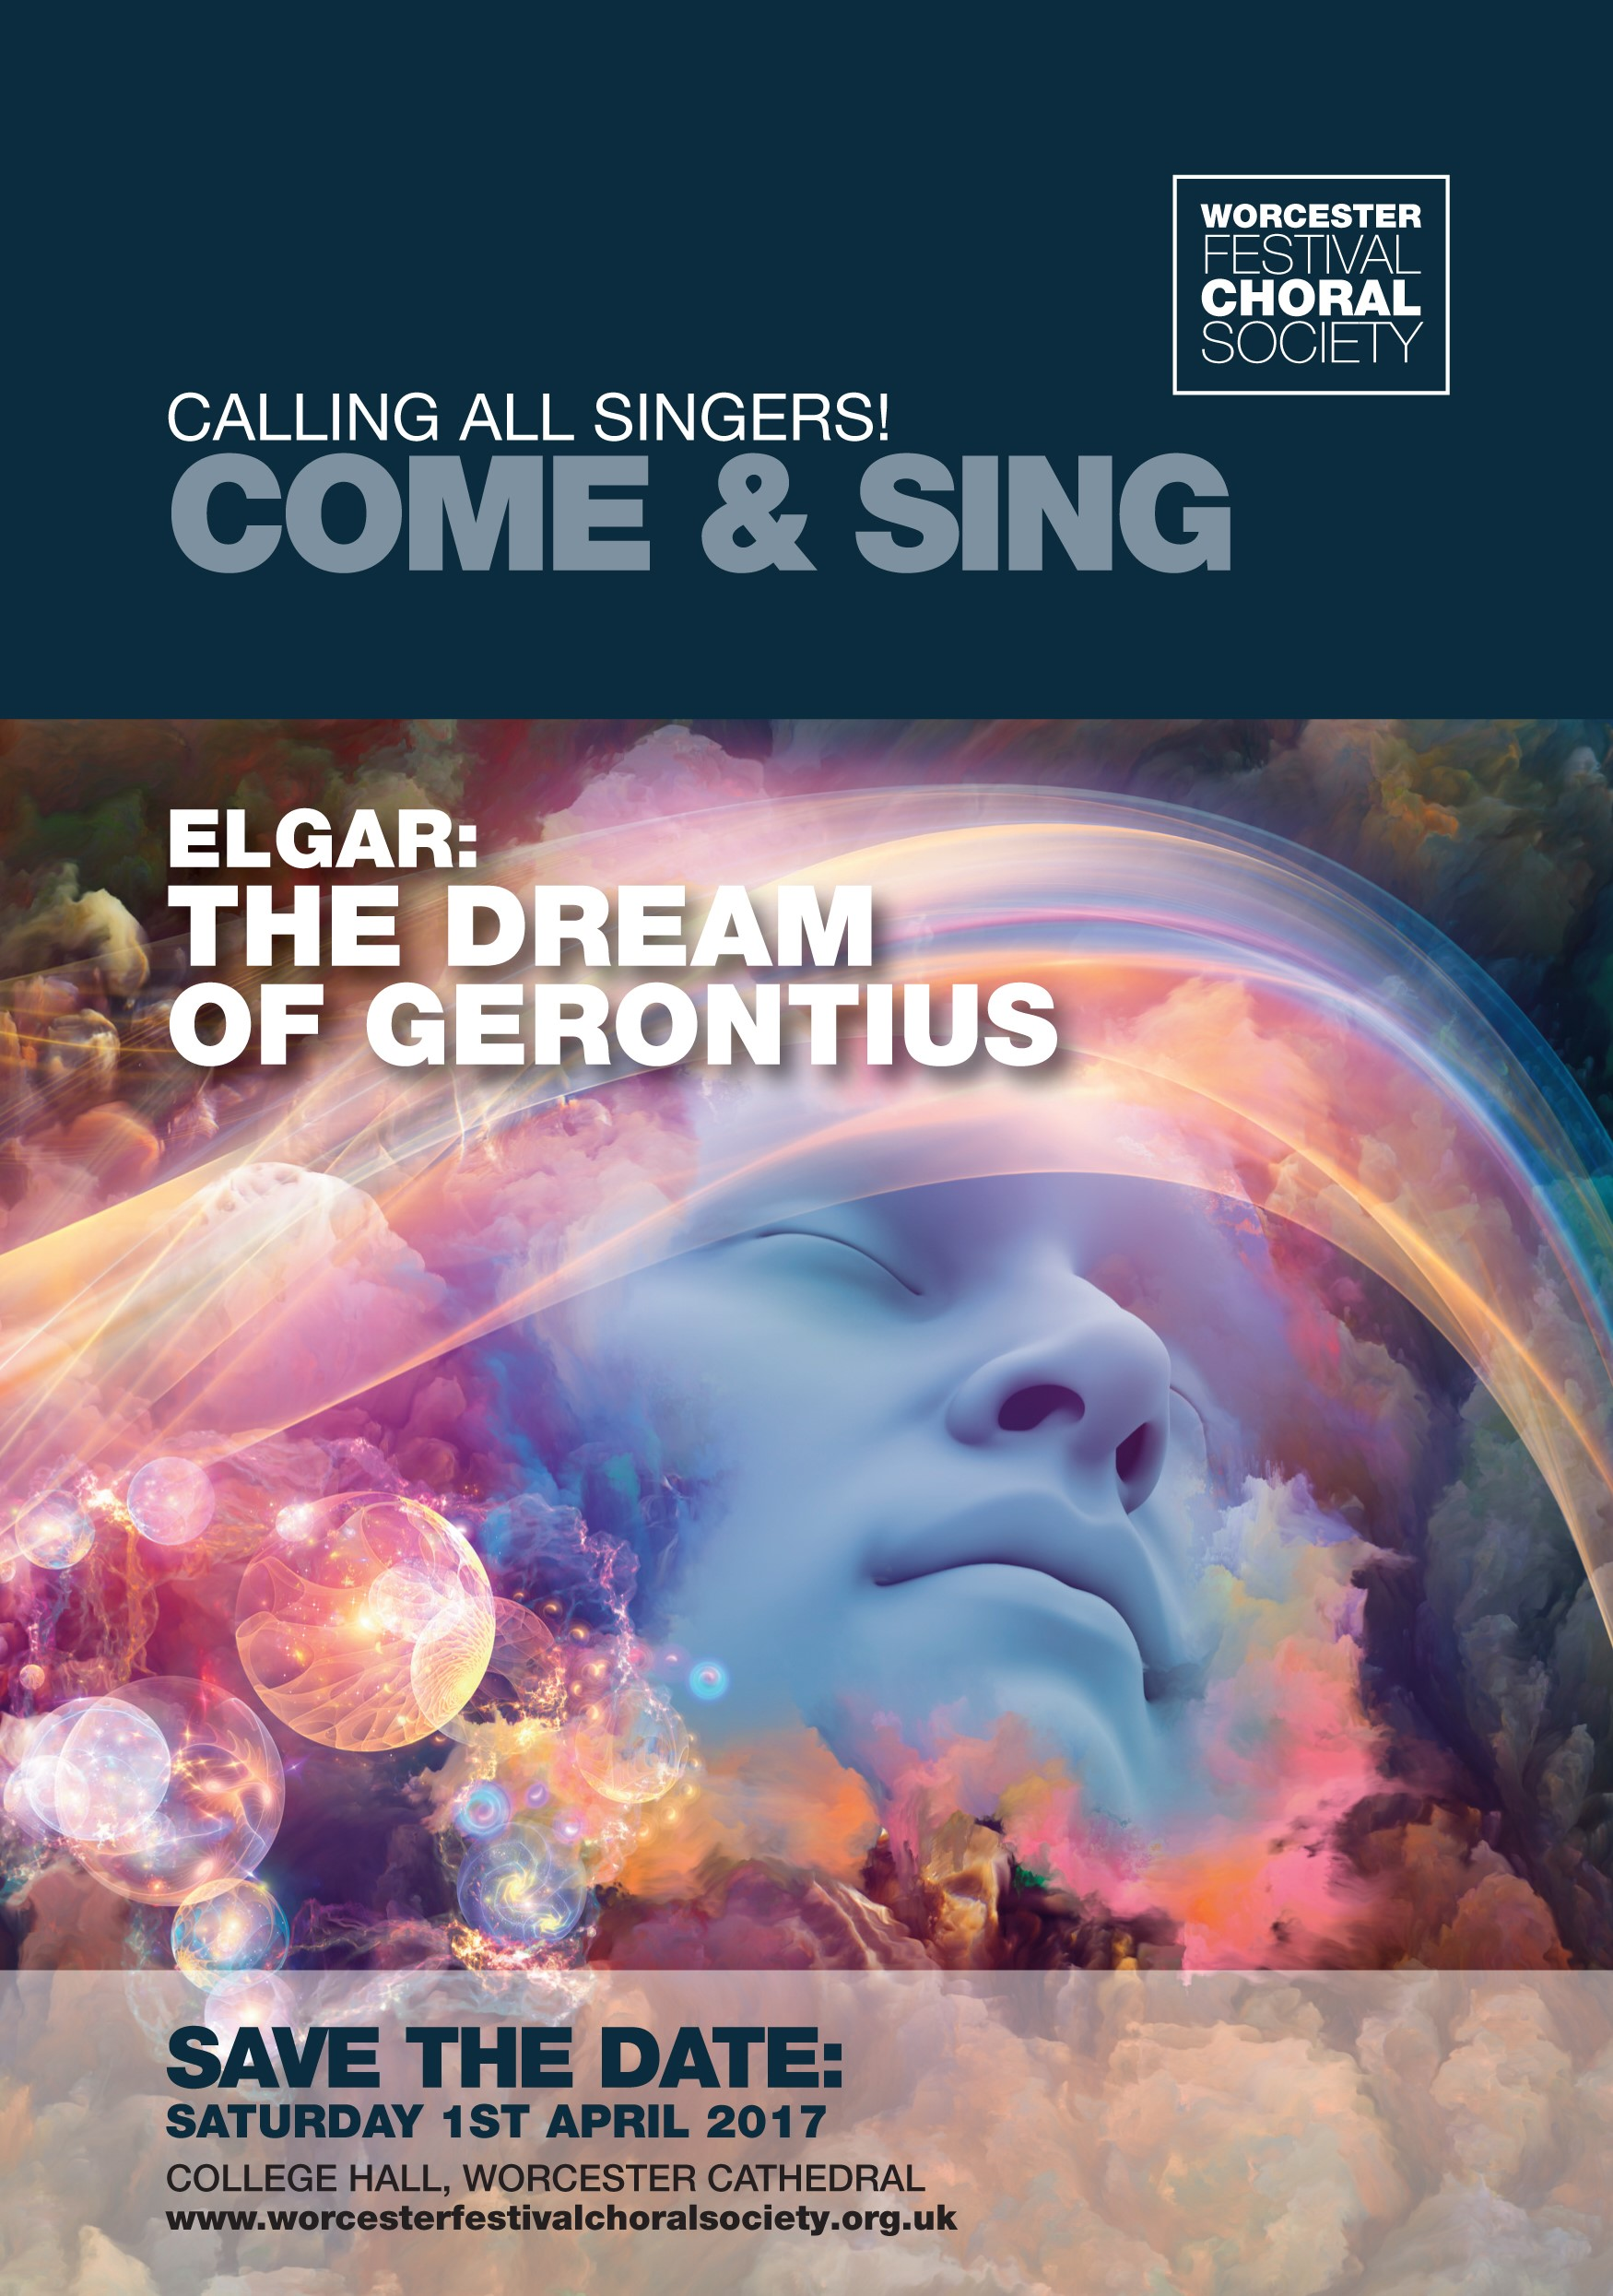 Come & Sing! Elgar: Dream of Gerontius - One-day workshop